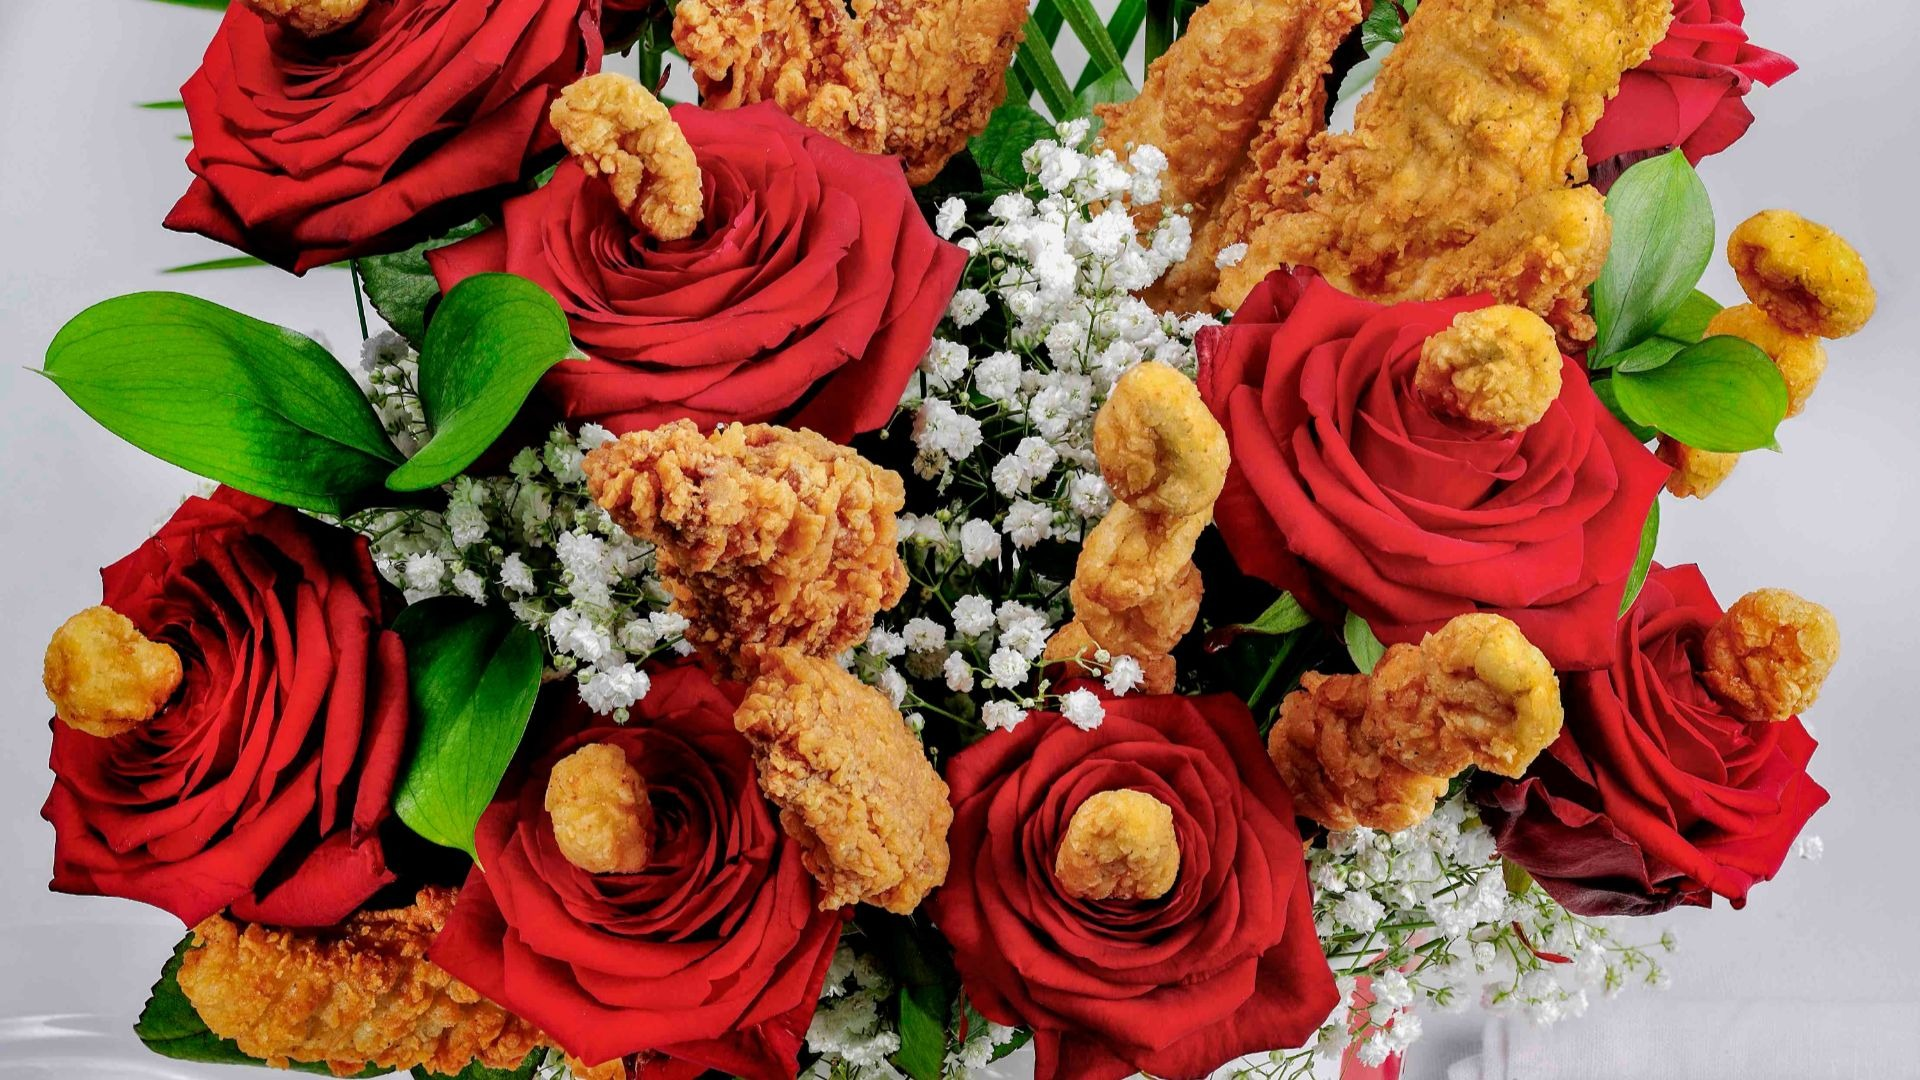 KFC launches fried chicken flower bouquet just in time for Valentine's Day.